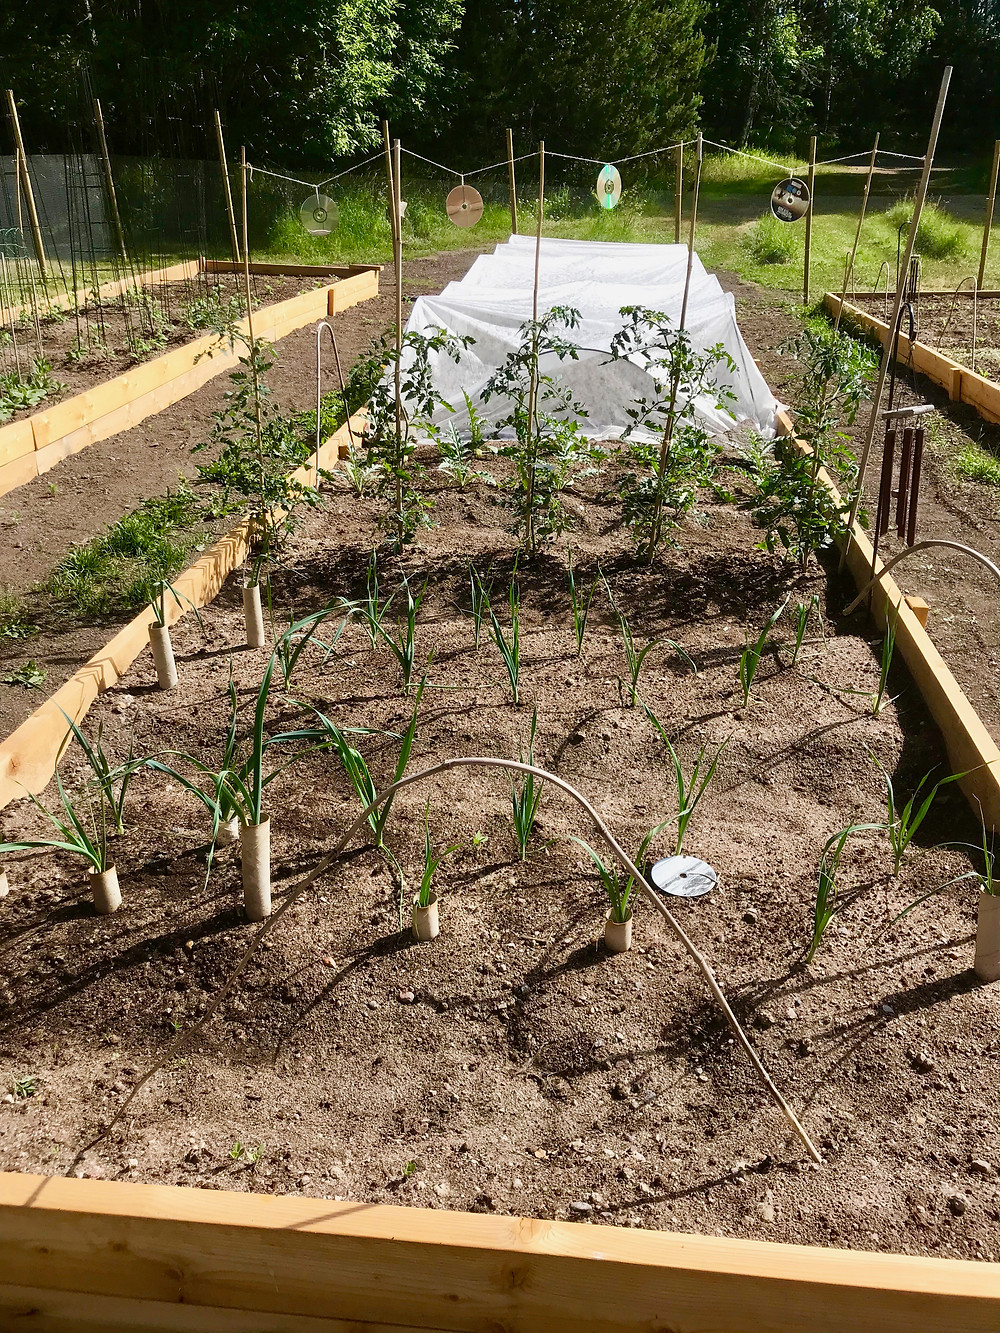 Leeks, tomatoes and kale & broccoli under cover